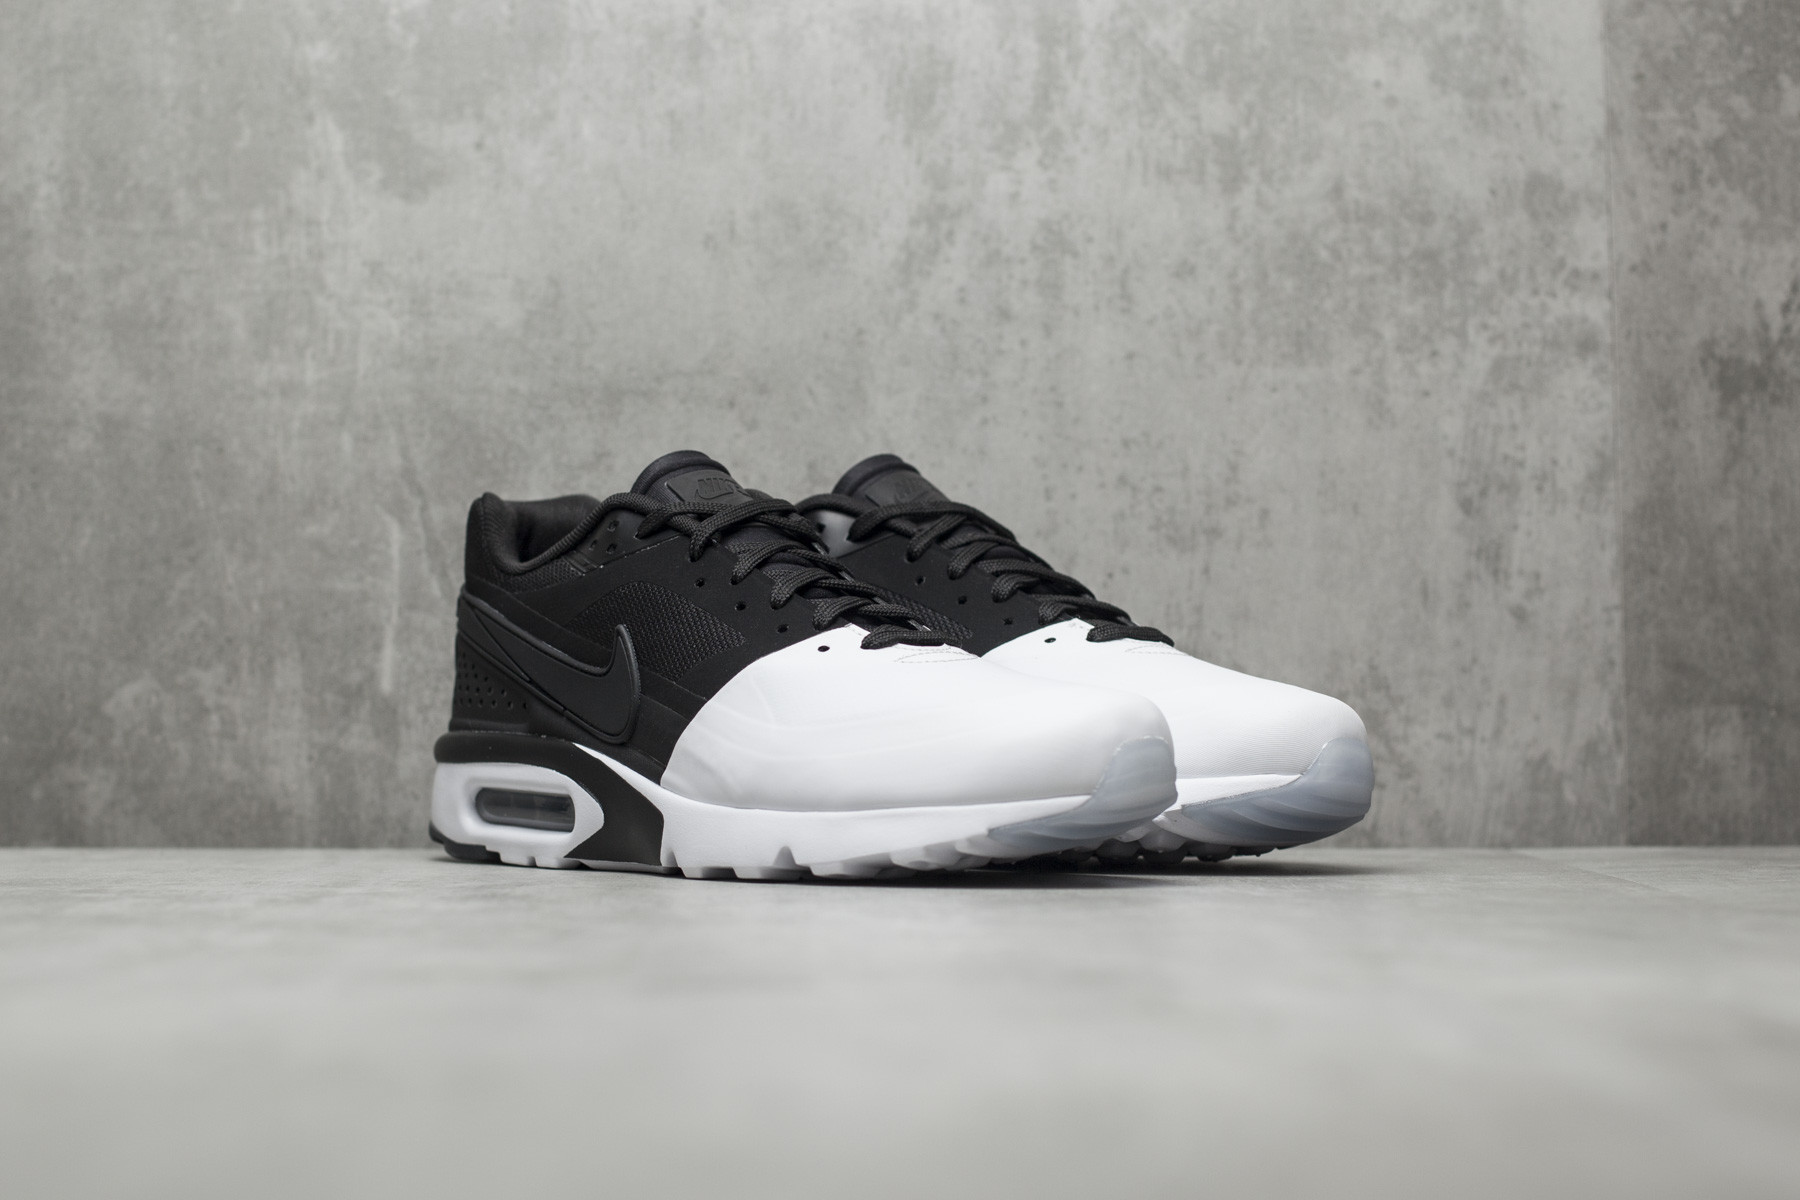 a41546dfeb1bc ... black anthracite white 5 733bd 8f58a; best nike air max bw ultra se  5dcd0 5b7ba